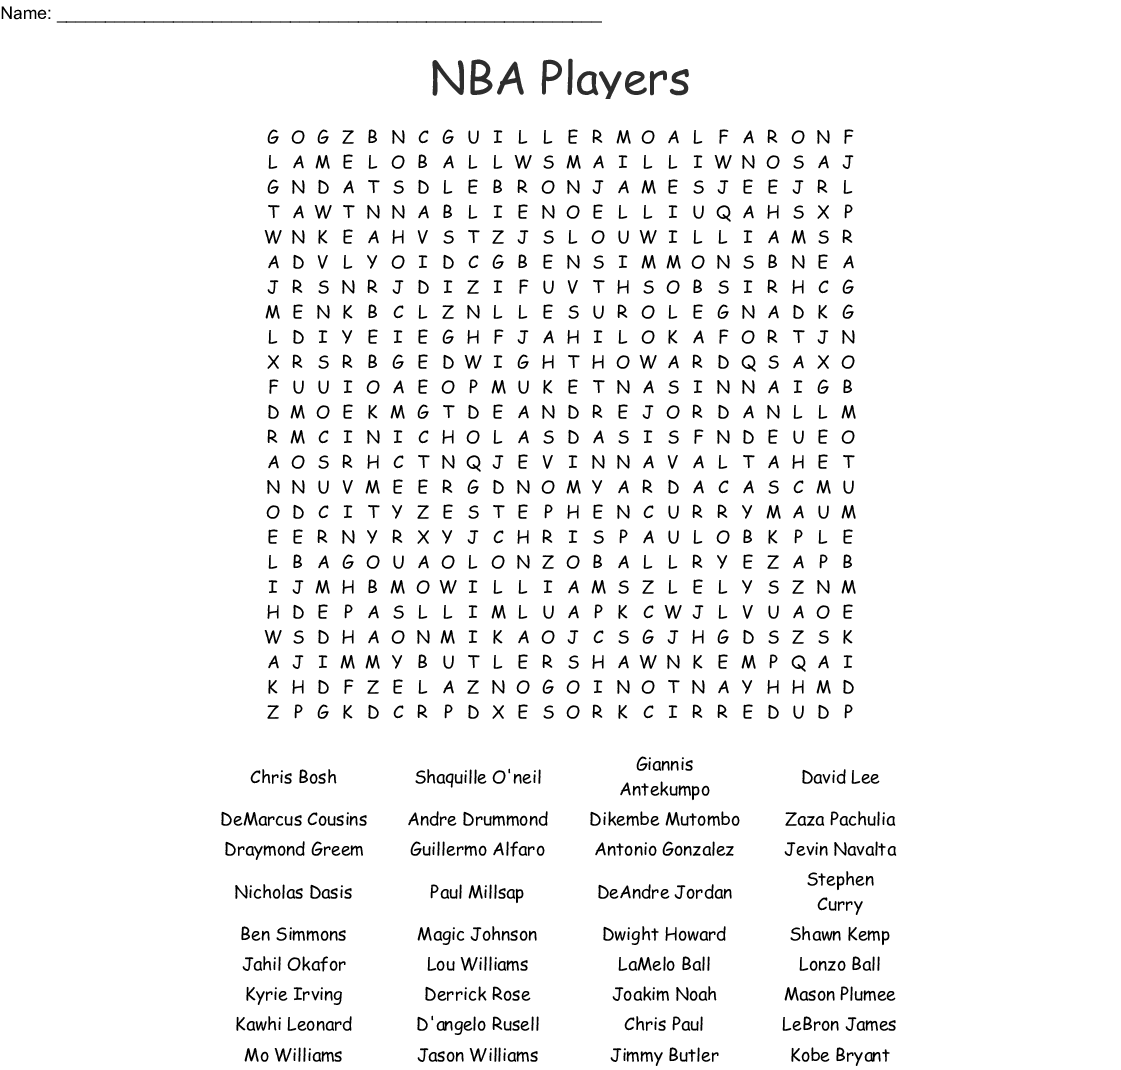 Sports By Jeremiah Word Search